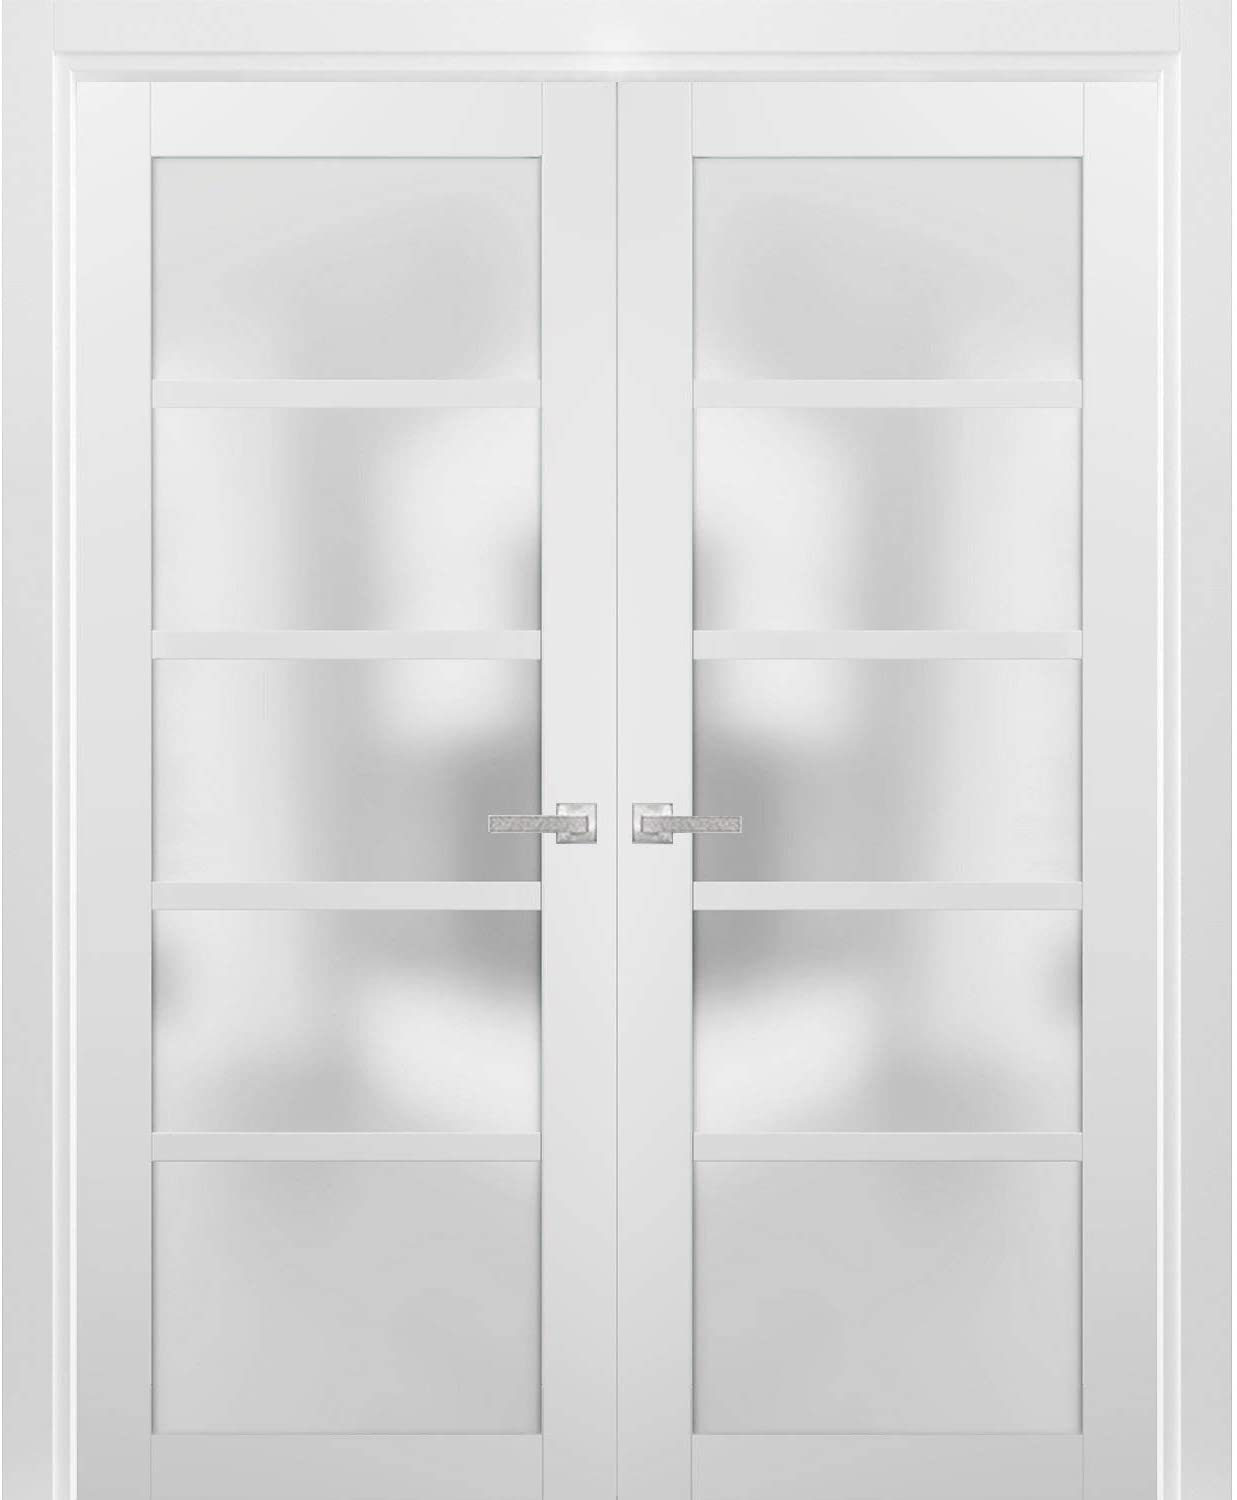 French Double Panel Lite Doors 72 with safety 40 Hardware 96 Quadro x Minneapolis Mall